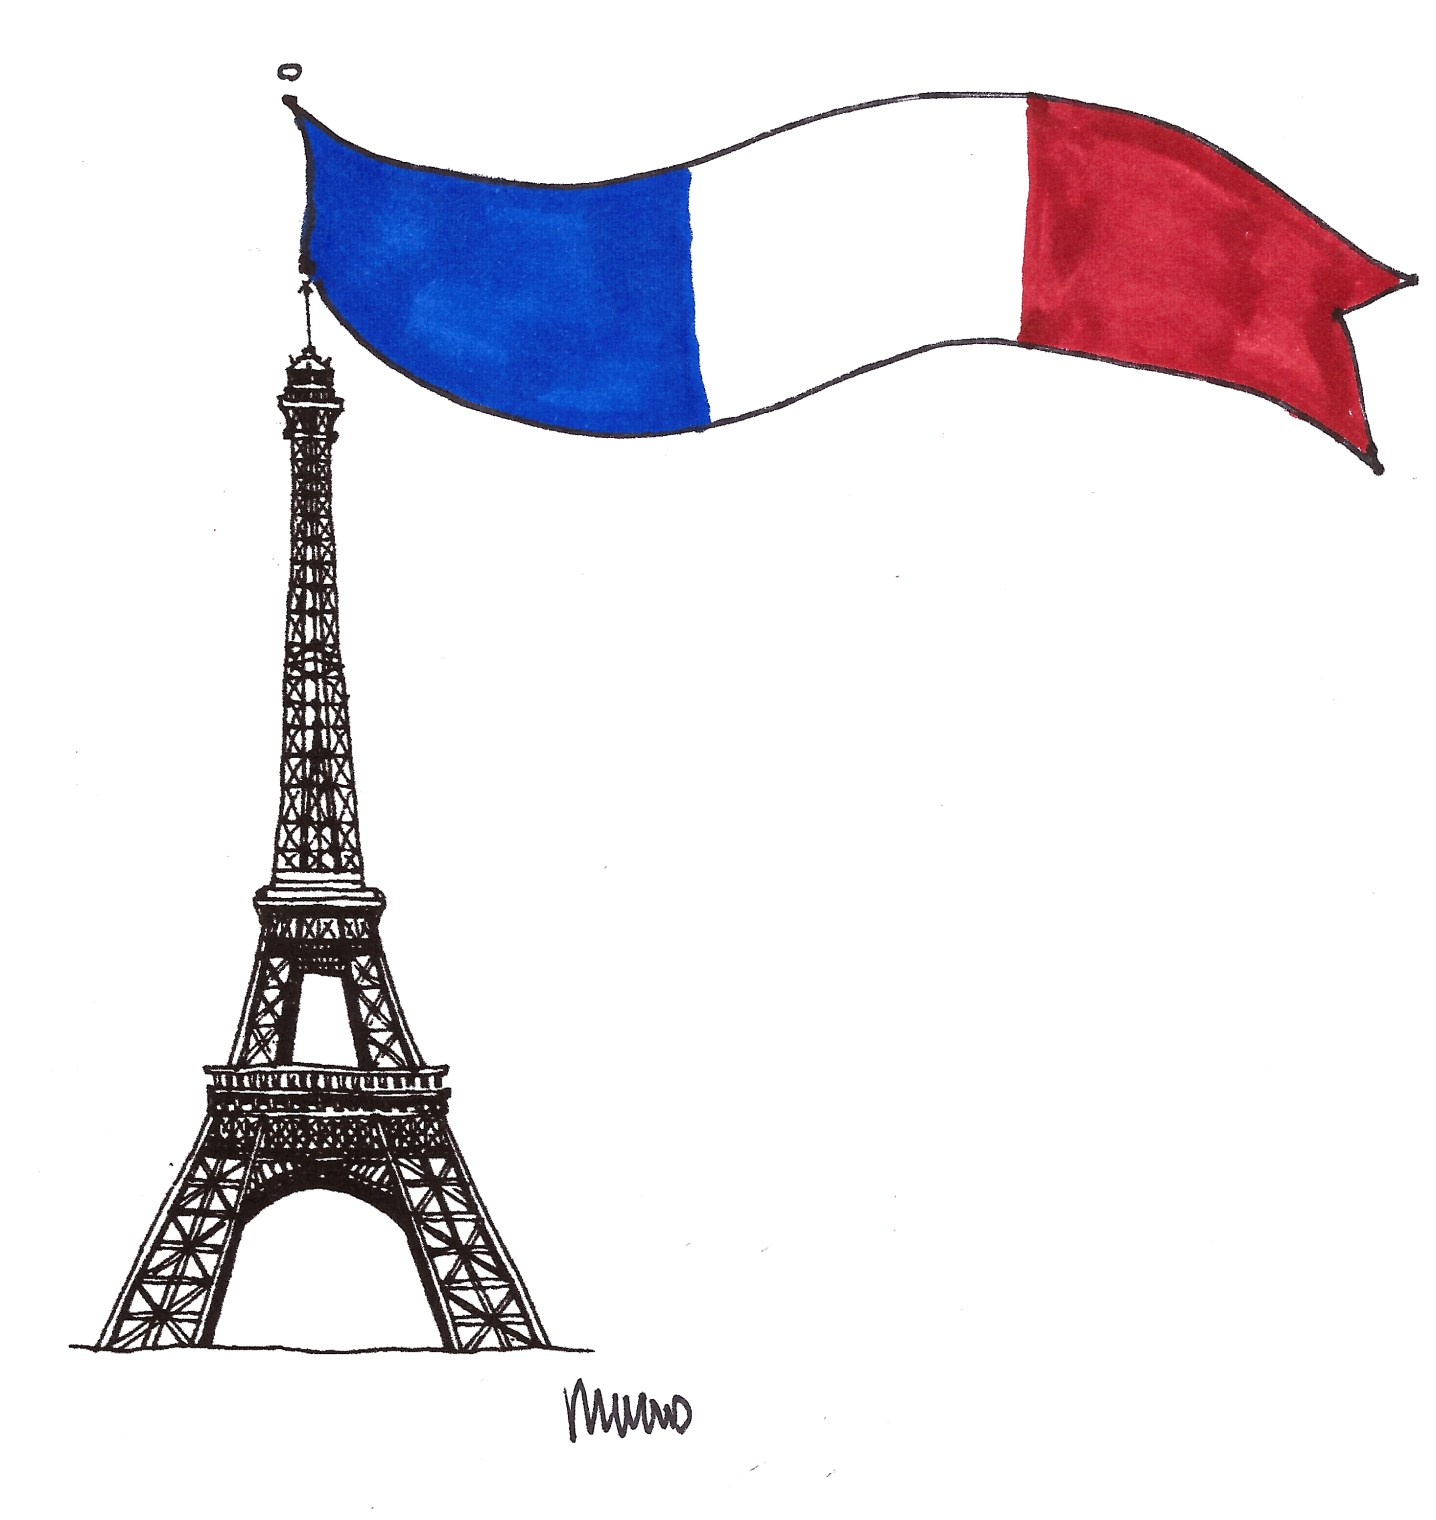 Eiffel Tower and French Flag Illustration by M Wood - Around Here...November 2015 at www.elistonbutton.com - Eliston Button - That Crafty Kid – Art, Design, Craft & Adventure.